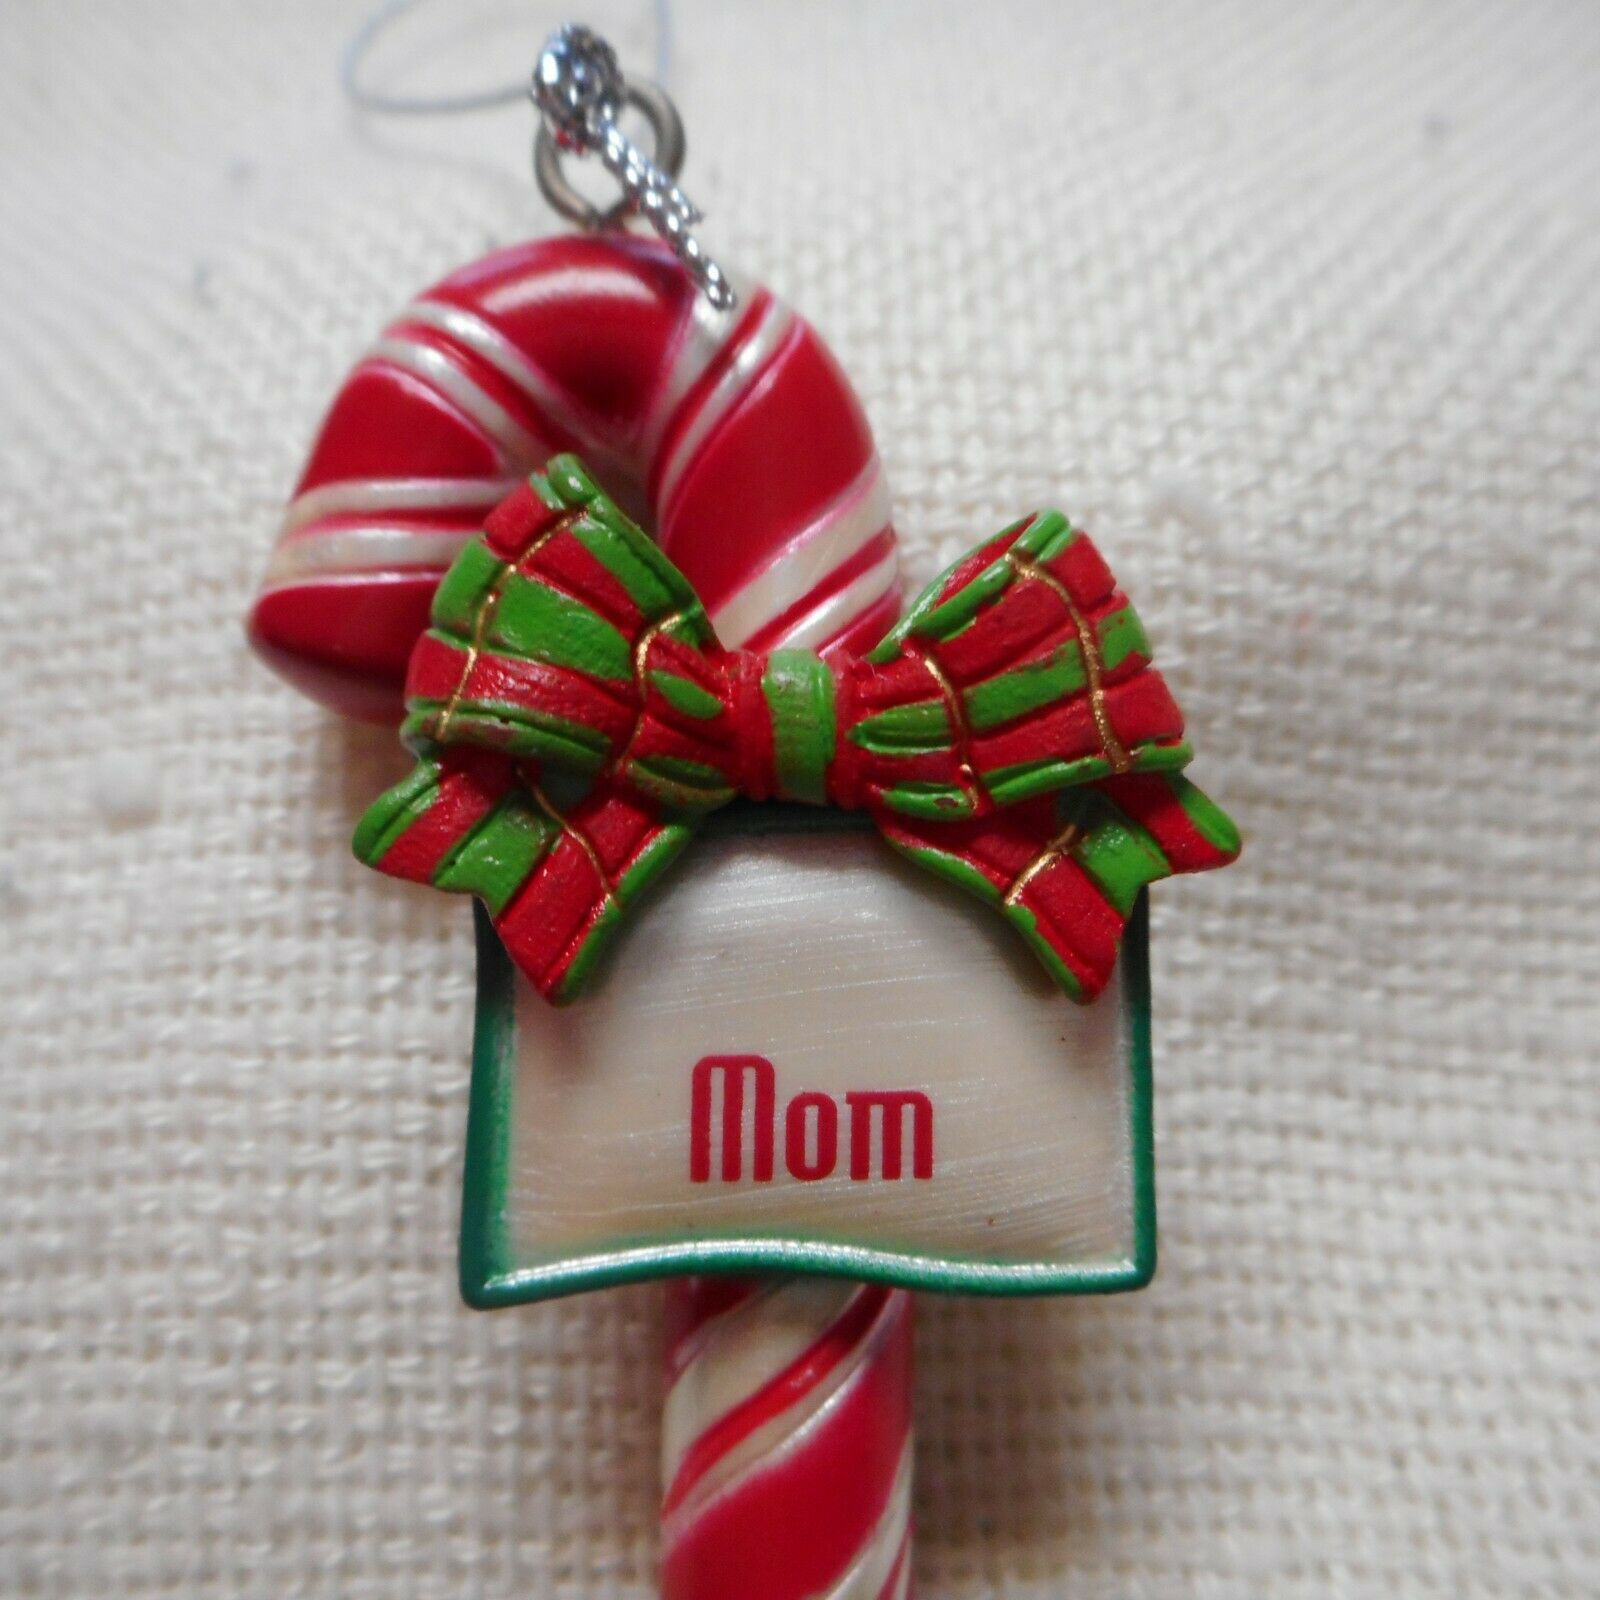 Ornament OOAK Christmas Candy Cane HAND-TIED Name KATHLEEN Joyful MEMORIES!